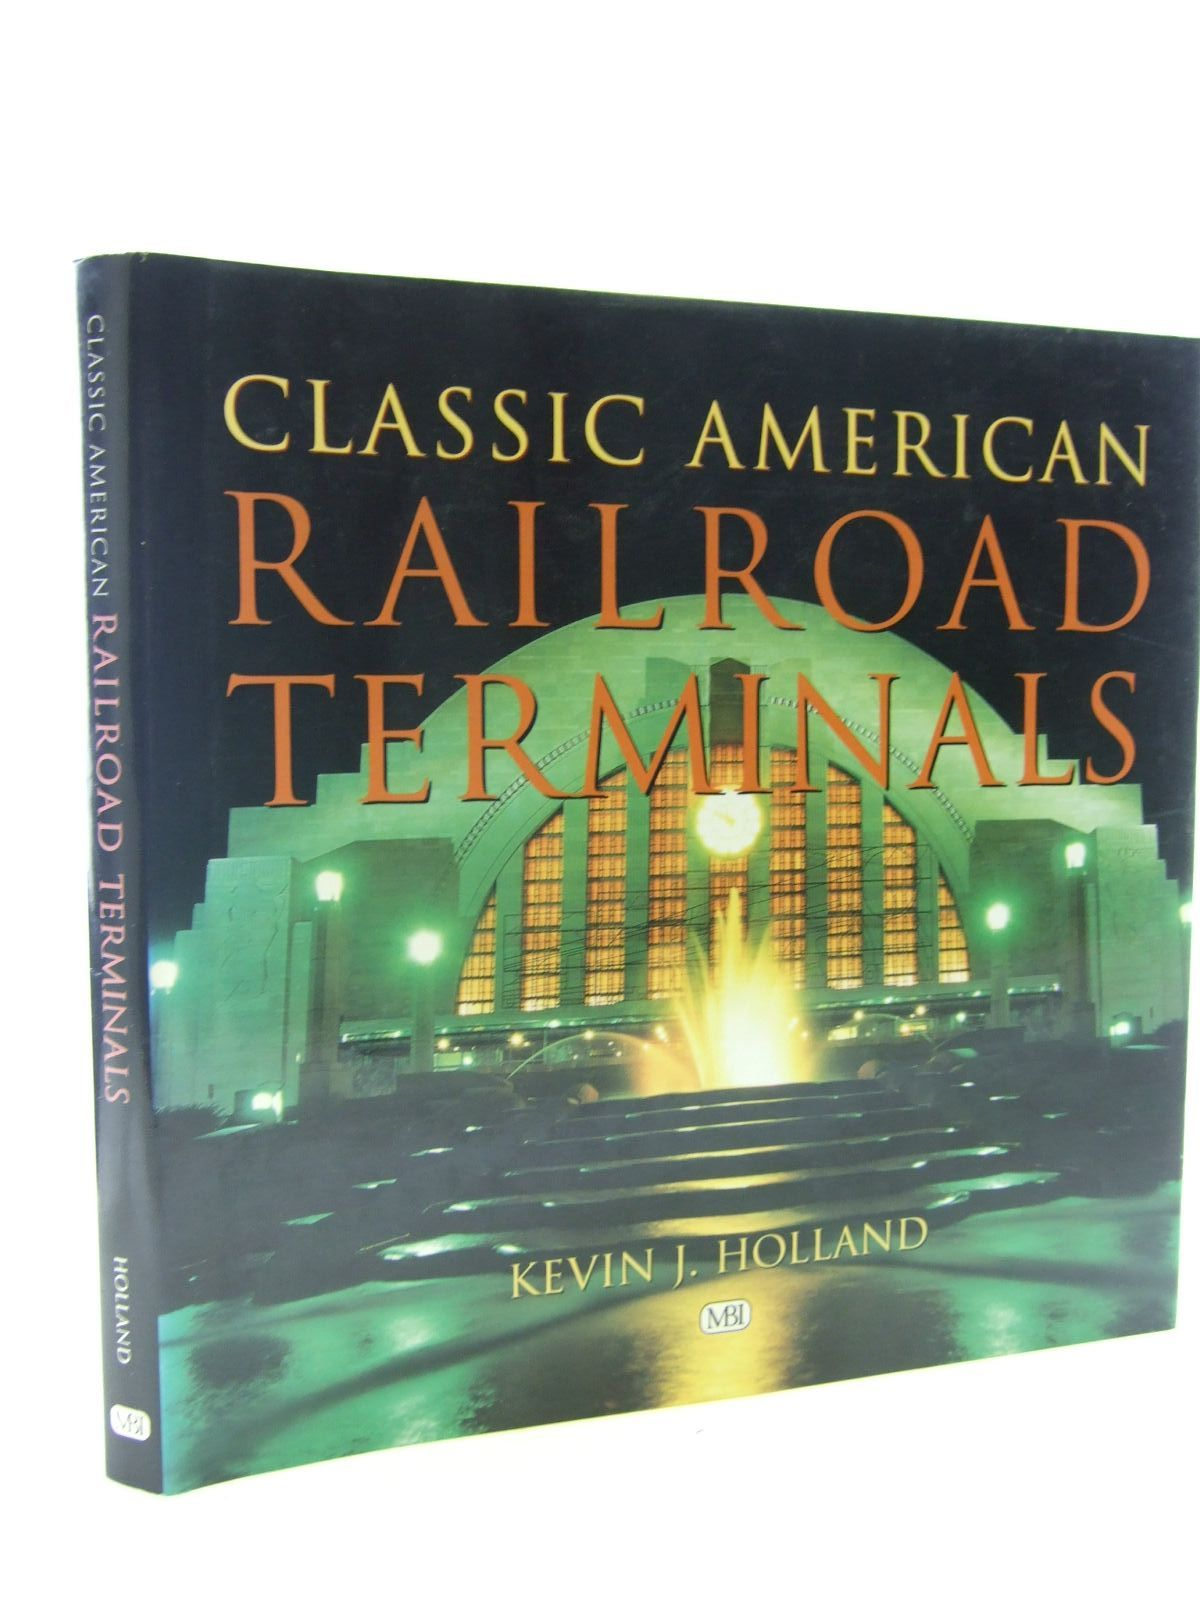 Photo of CLASSIC AMERICAN RAILROAD TERMINALS written by Holland, Kevin J. published by Mbi Publishing (STOCK CODE: 1706651)  for sale by Stella & Rose's Books